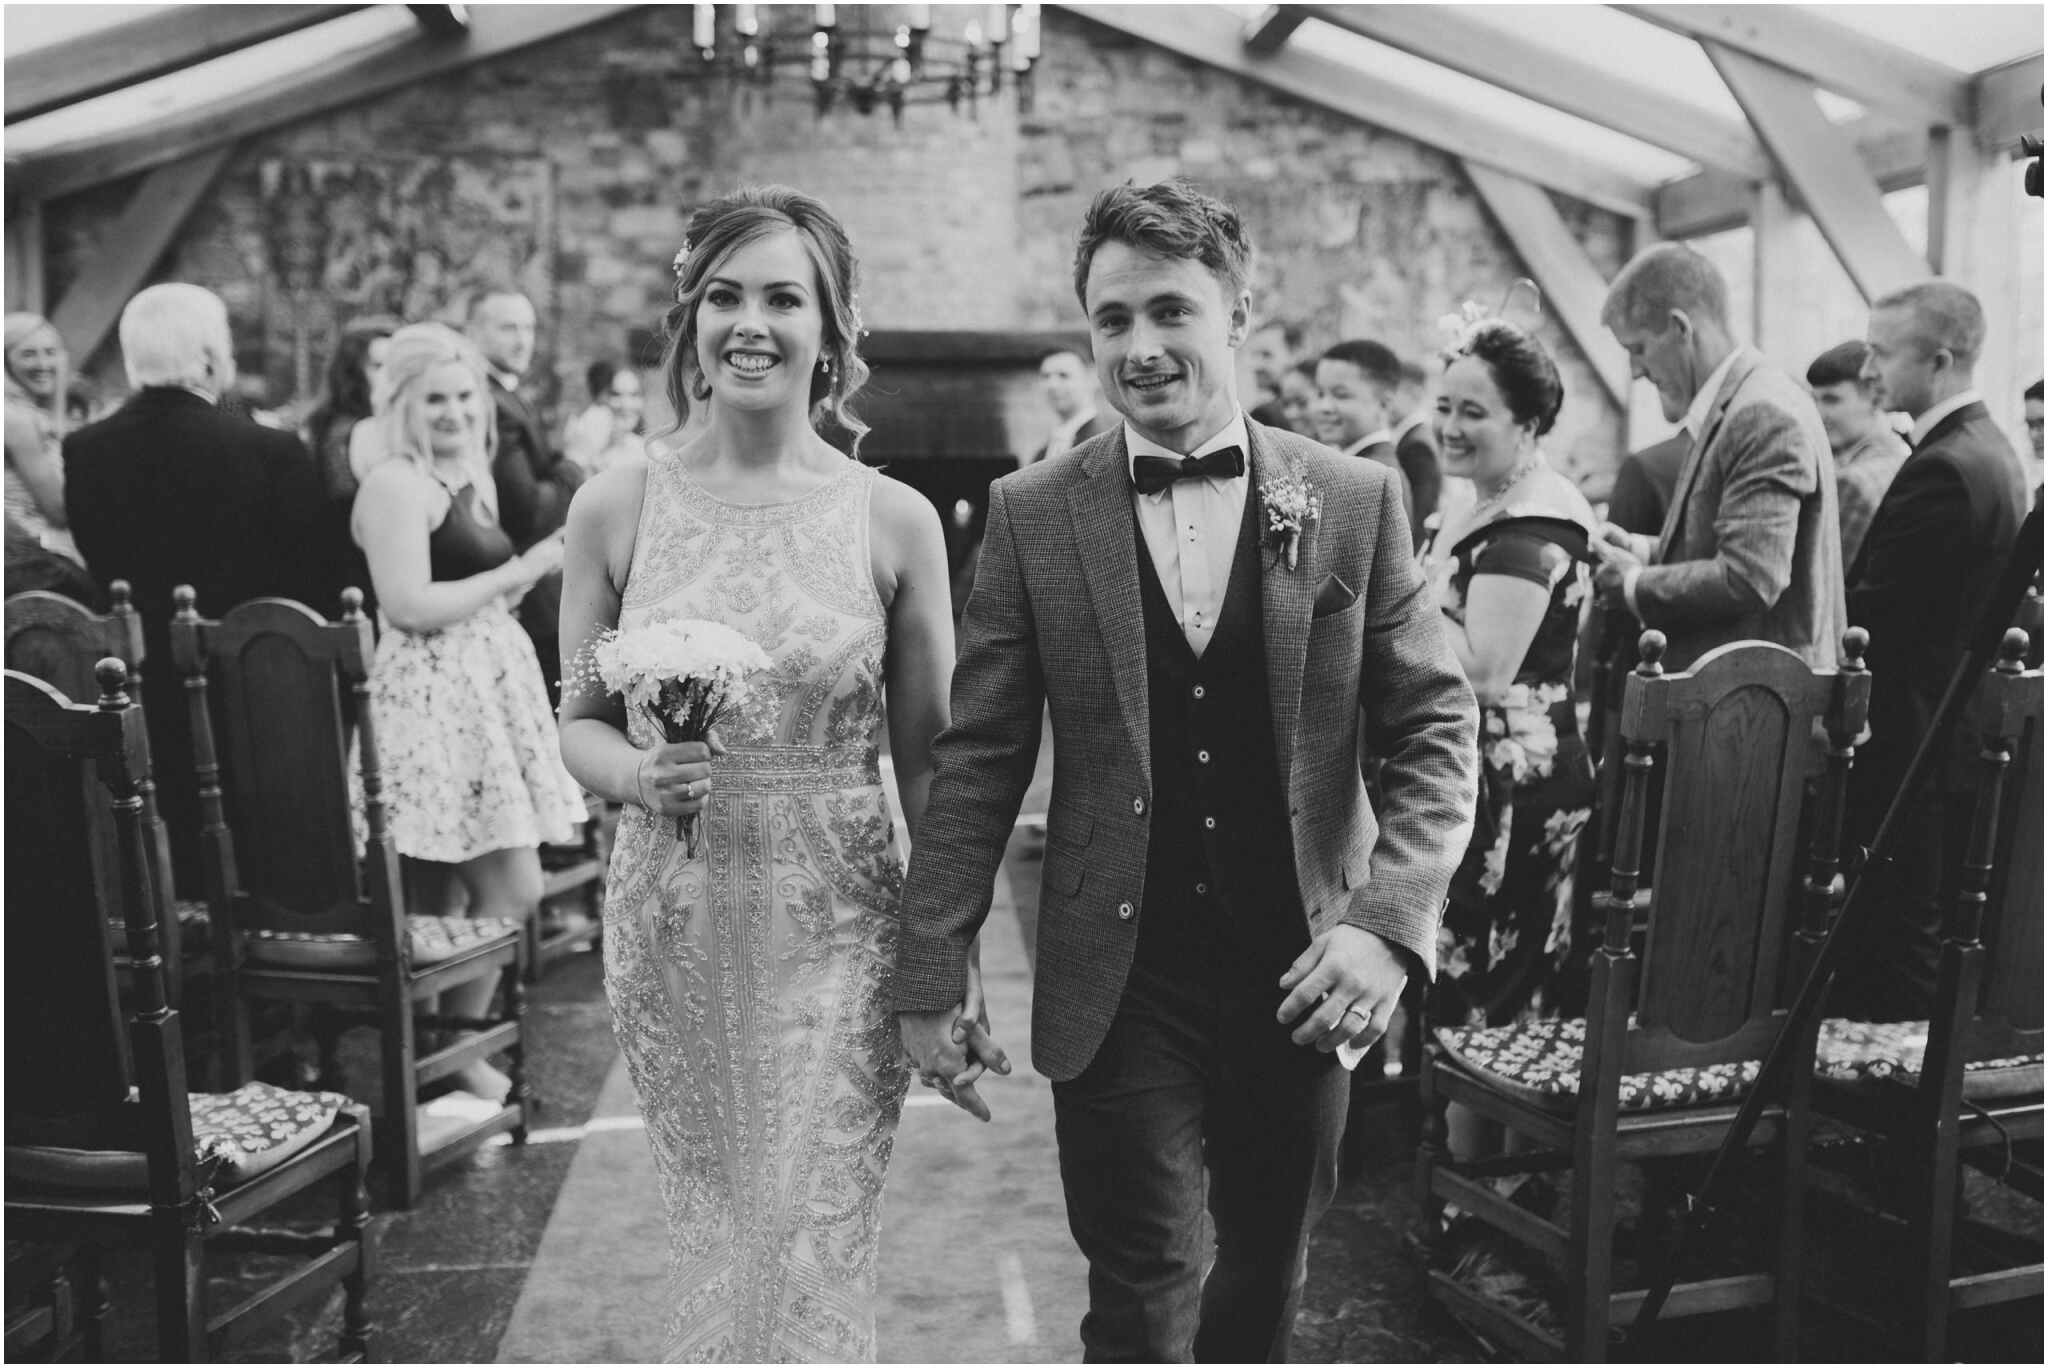 Barberstown castle Ireland Irish Castle Wedding00049 - Fun and Relaxed wedding and elopement photography in Ireland, perfect for adventurous and outdoorsy couples